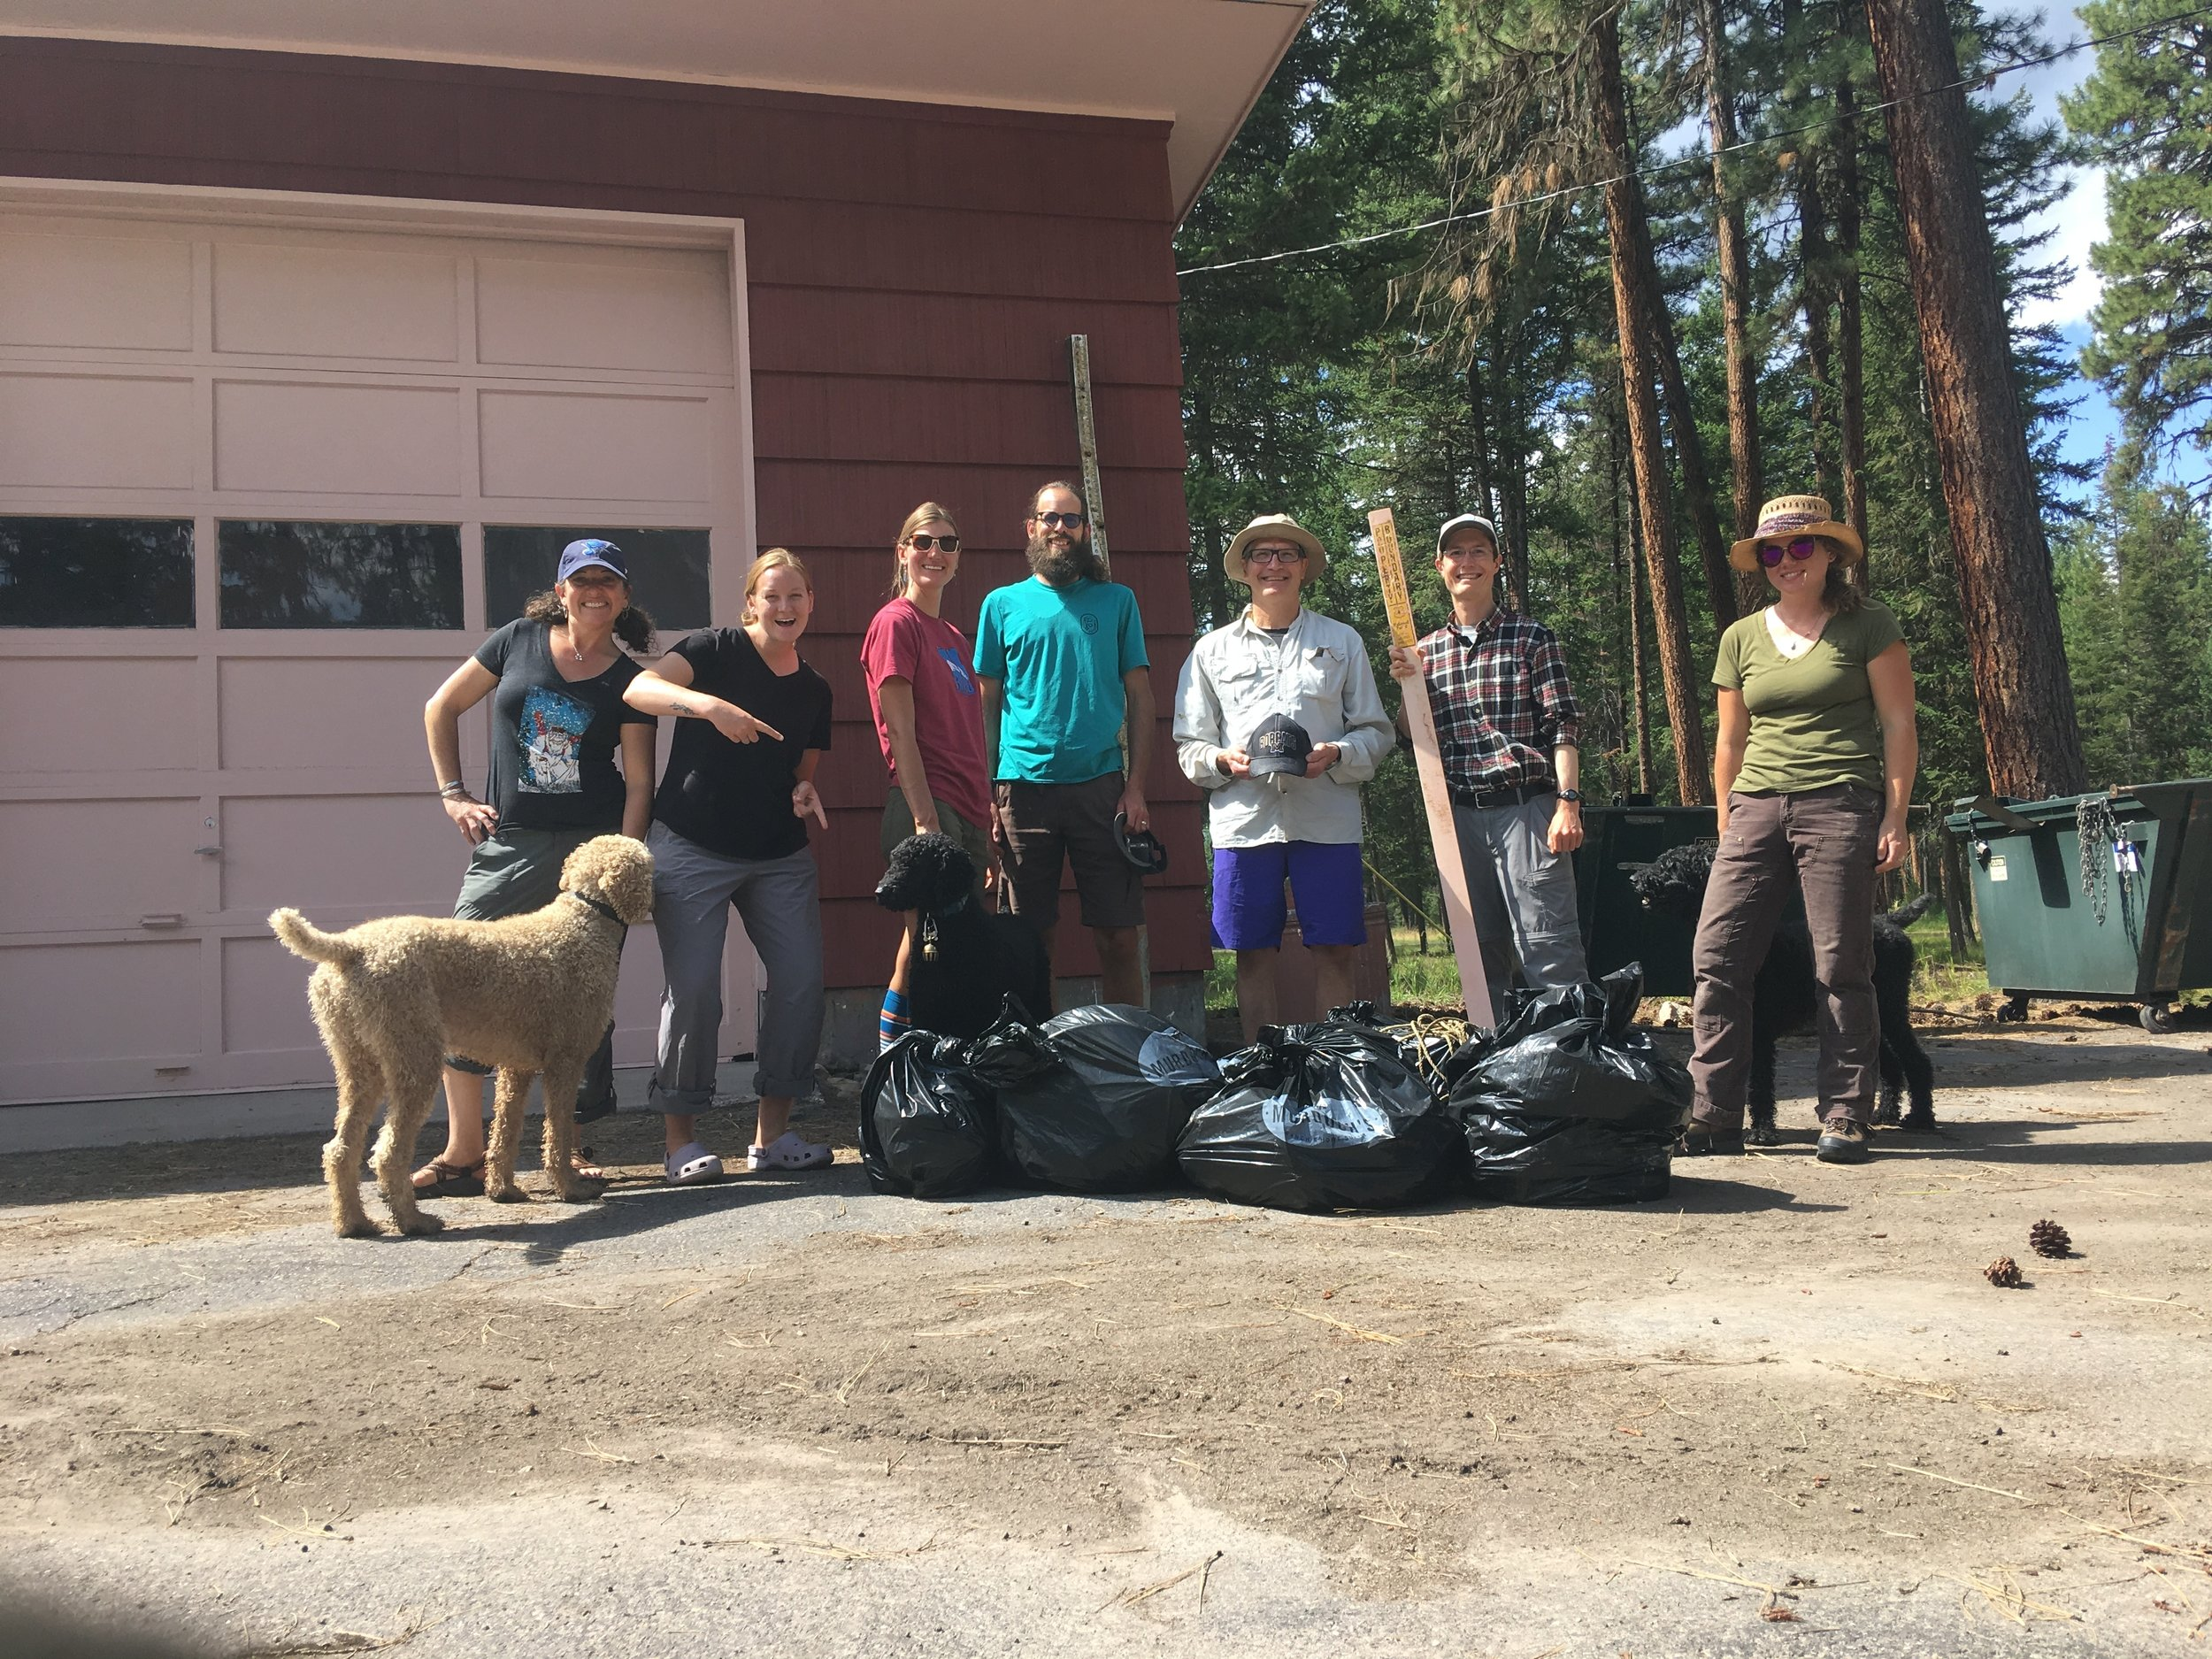 Here are seven of our eleven volunteers who participated in our debut river cleanup – thanks to Rebecca, Caitlyn, Apryll, Joost, Dan, Laura, Mike, Luke, Sharon, and Steve for all your efforts!